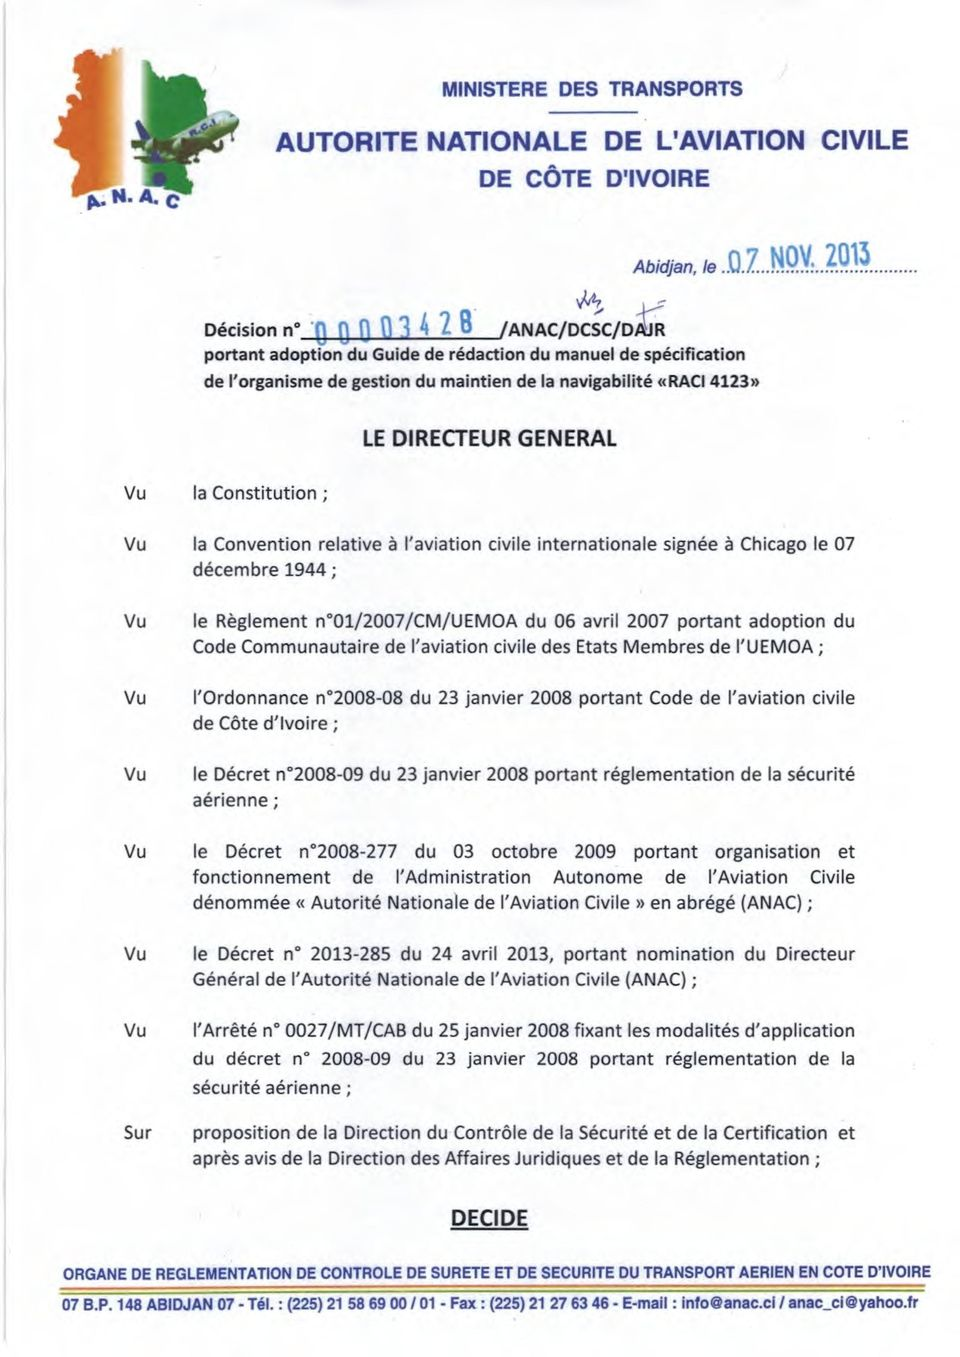 2013 de l'organisme de gestion du maintien de la navigabilité «RACI 4123» LE DIRECTEUR GENERAL Vu la Constitution ; Vu la Convention relative à l'aviation civile internationale signée à Chicago le 07